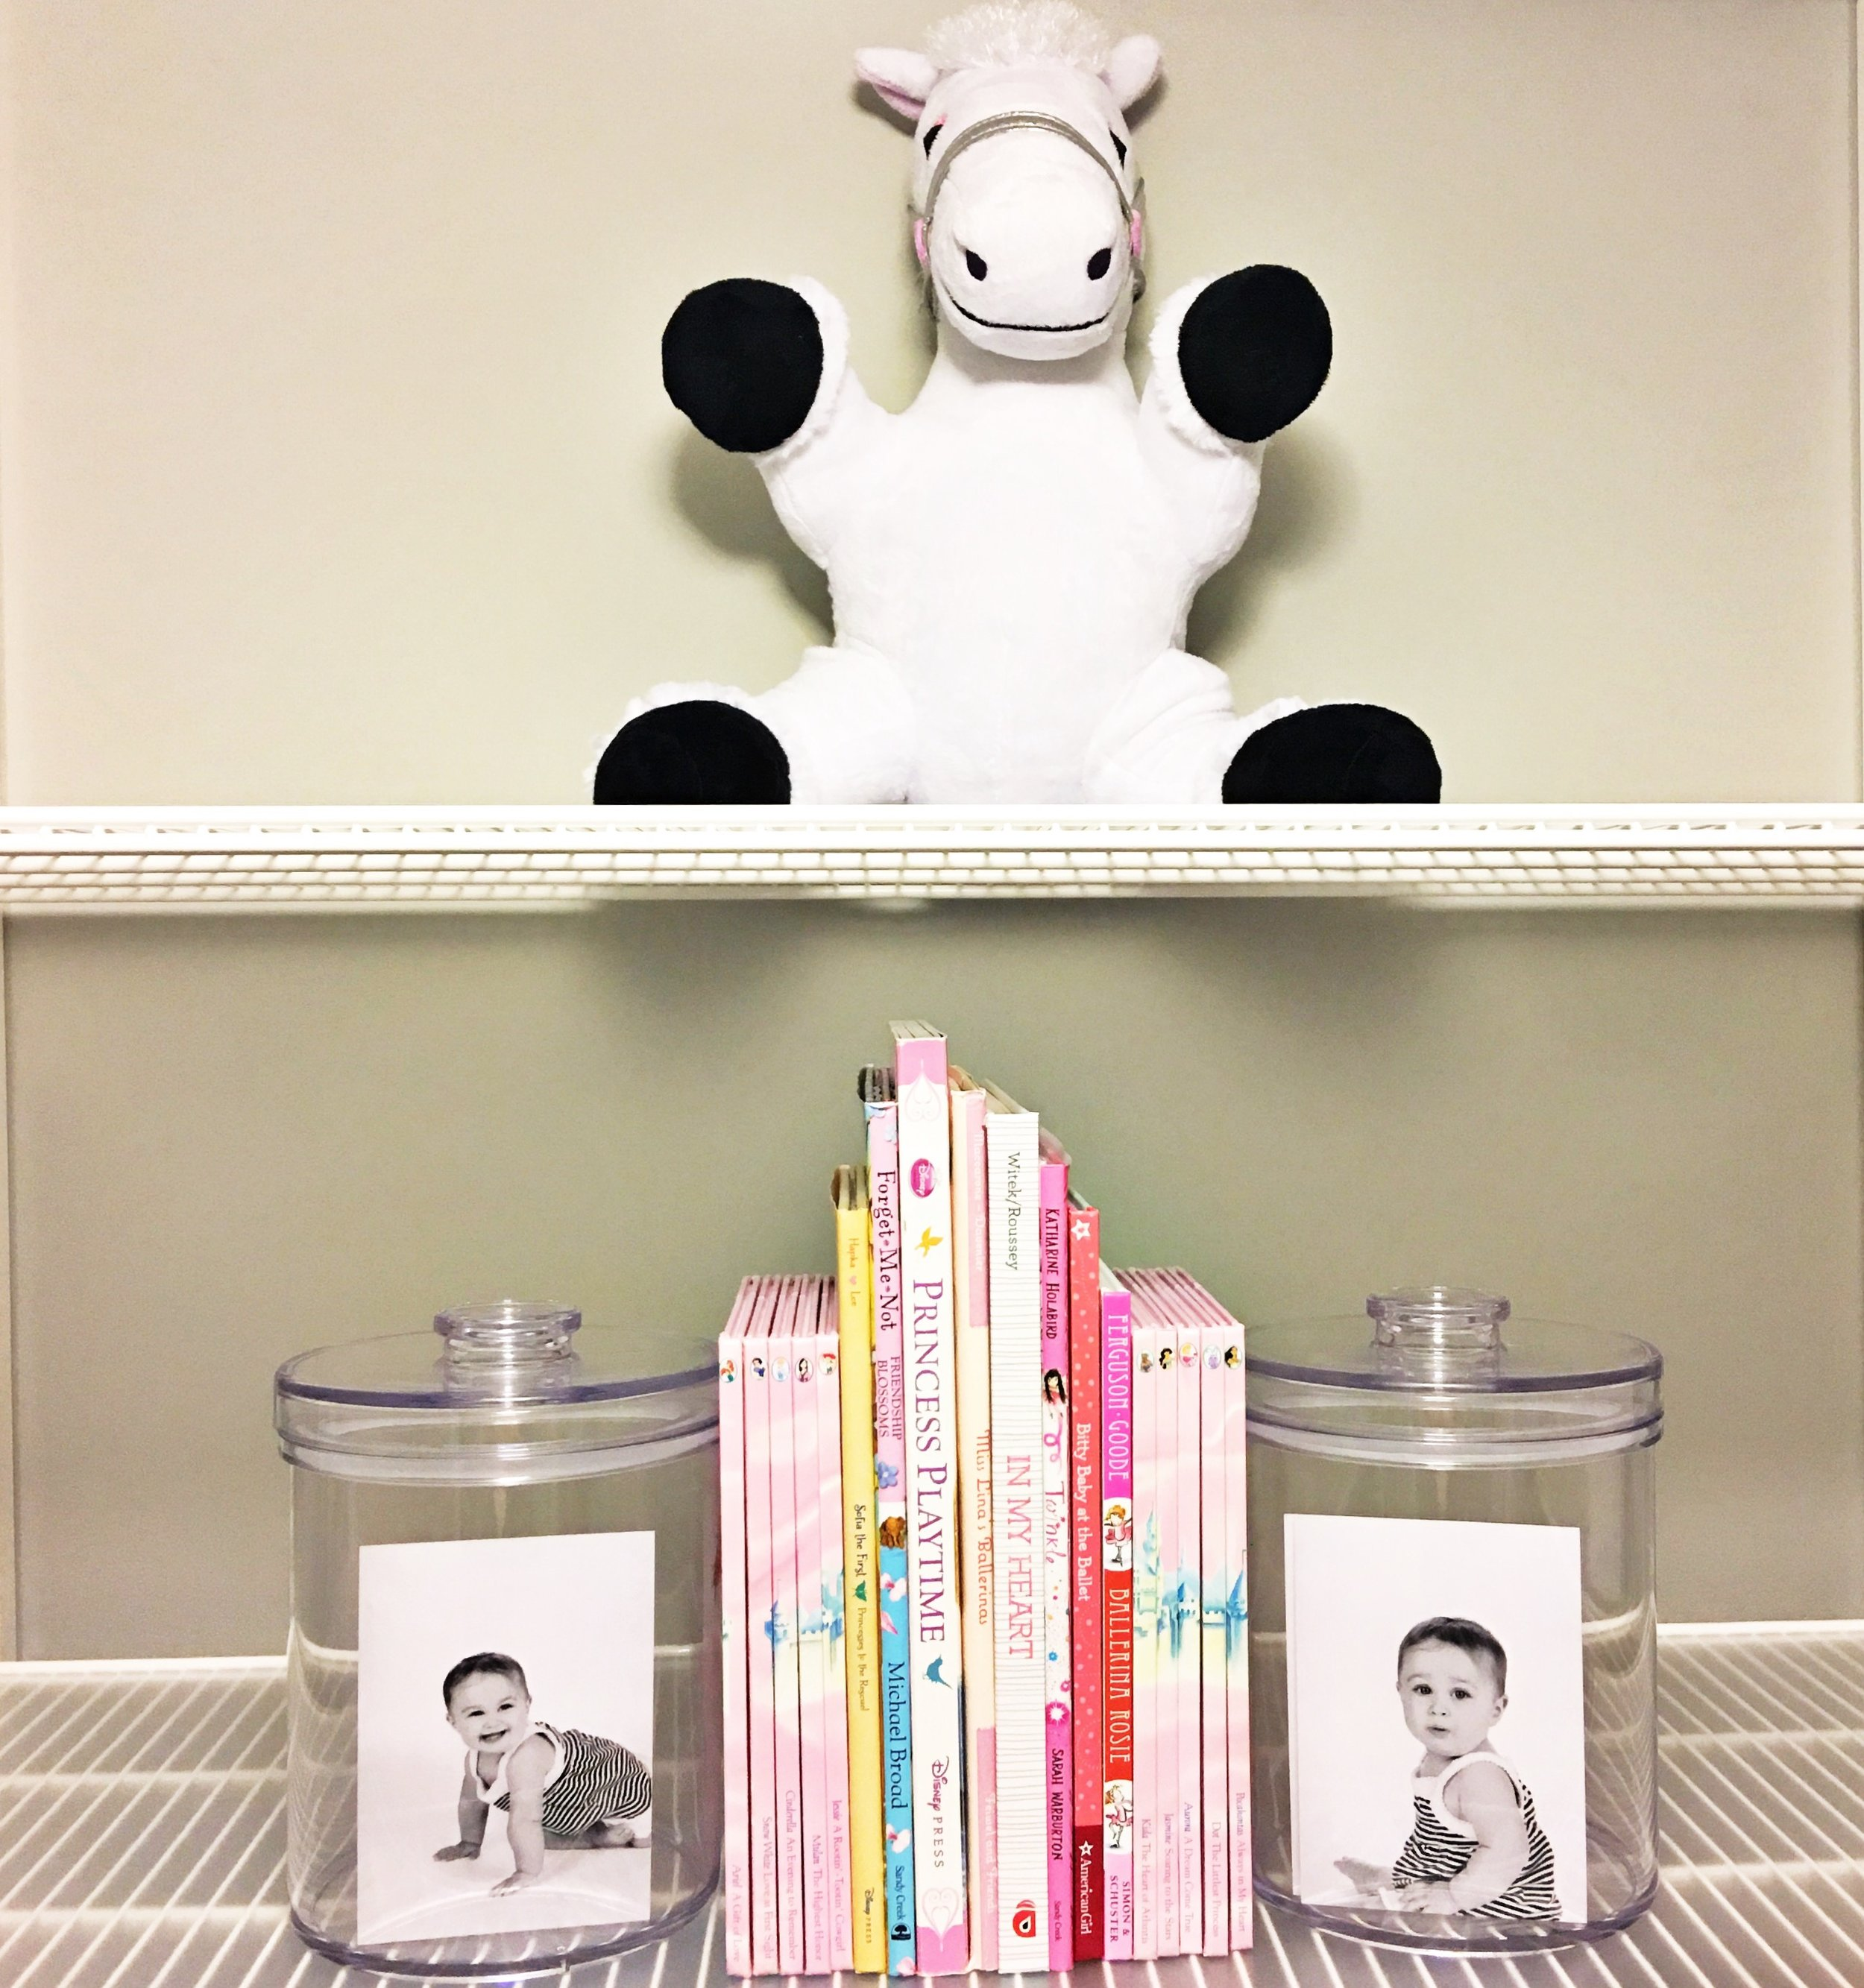 Shelfie_Kids_Organized Books_Creative Bookends